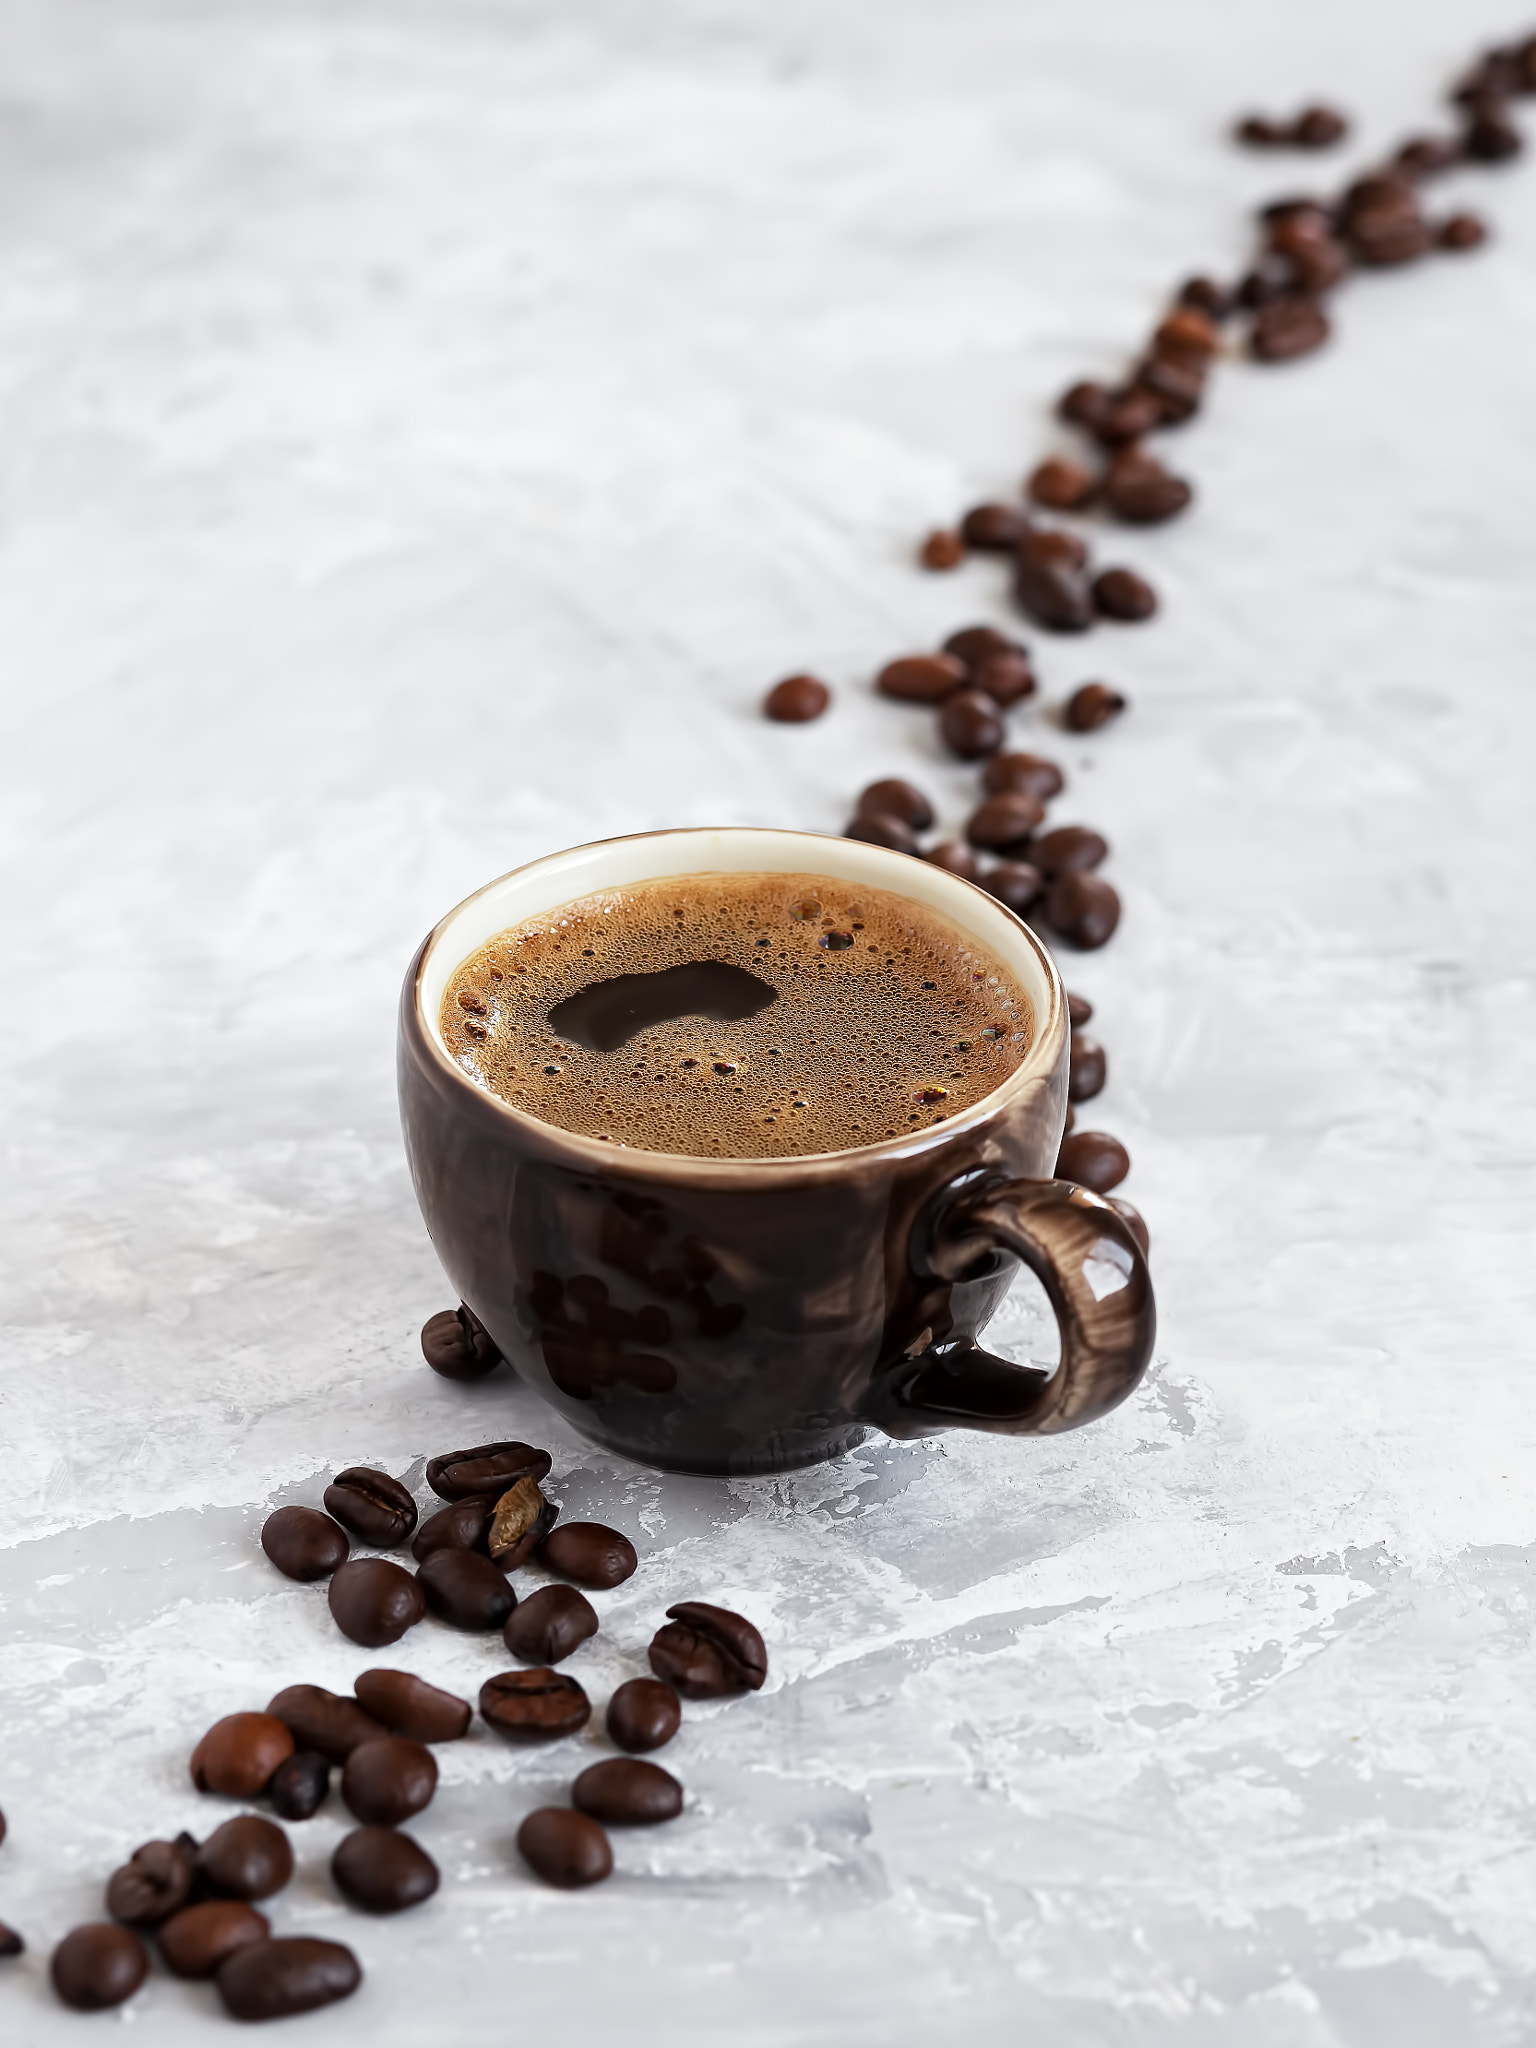 Cup with dark espresso arranged on a gray background. Roasted coffee beans are located around a cup